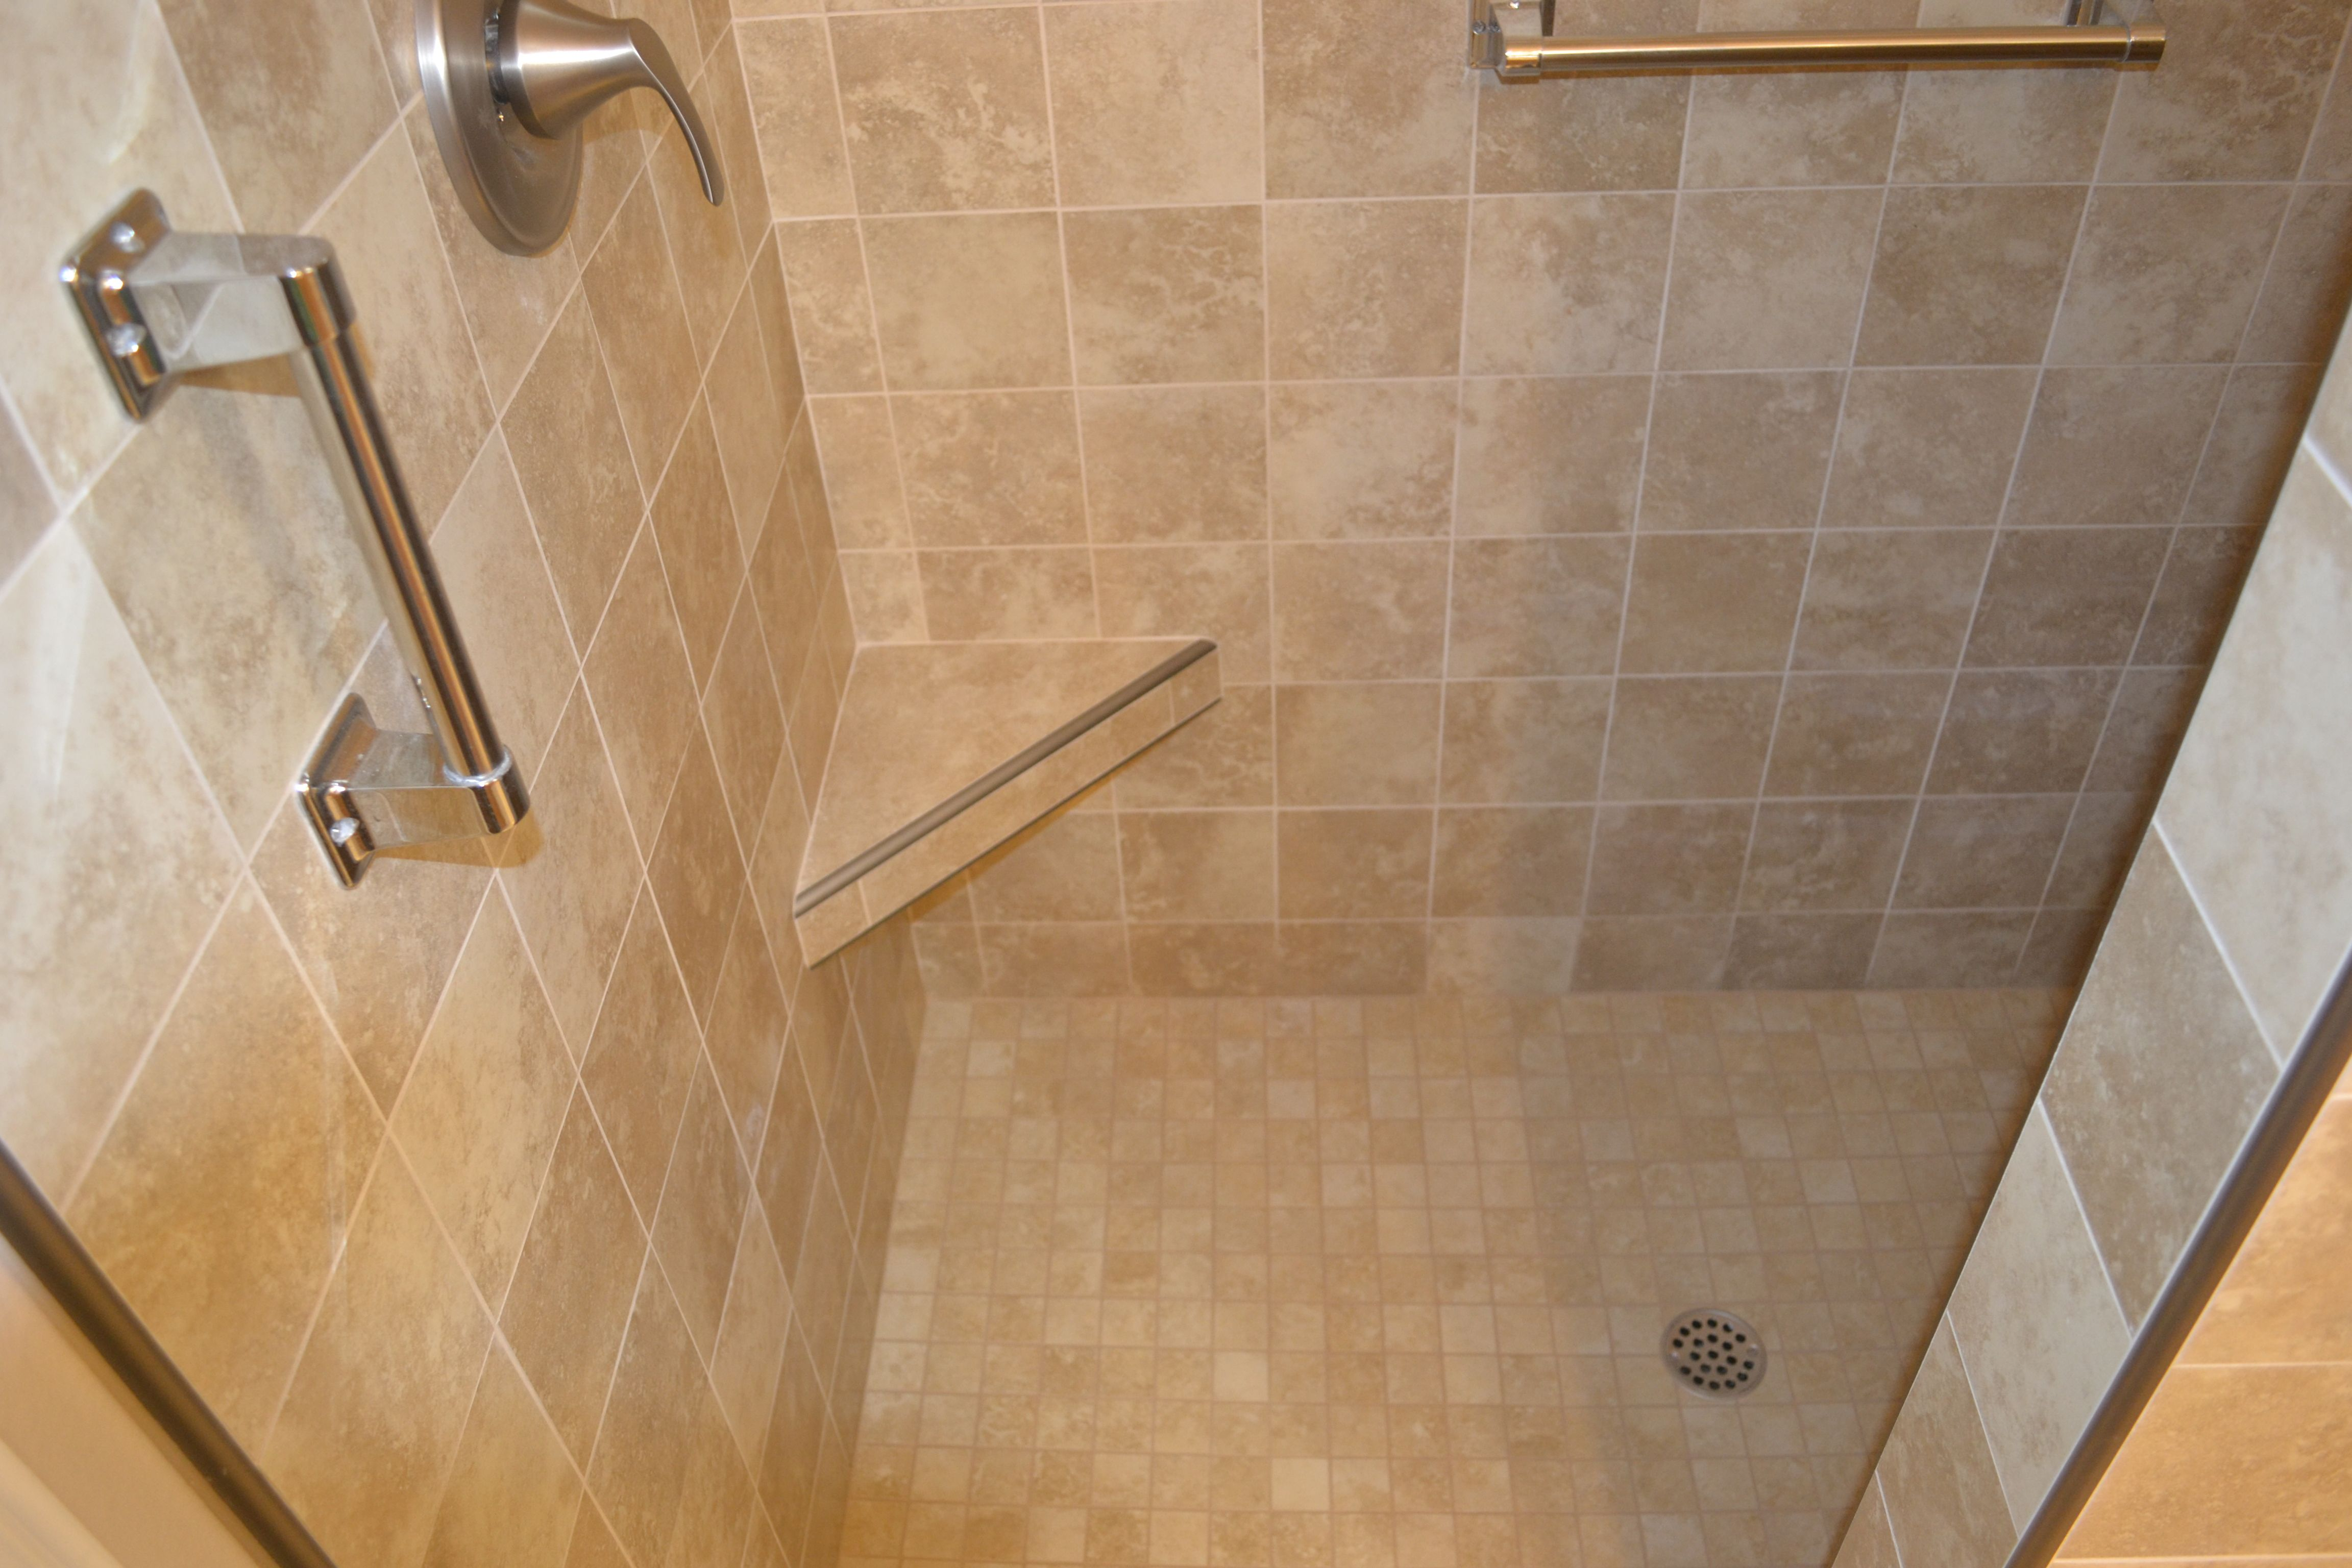 Door less shower with metal edge trim / Small Better Bench. Marcus ...